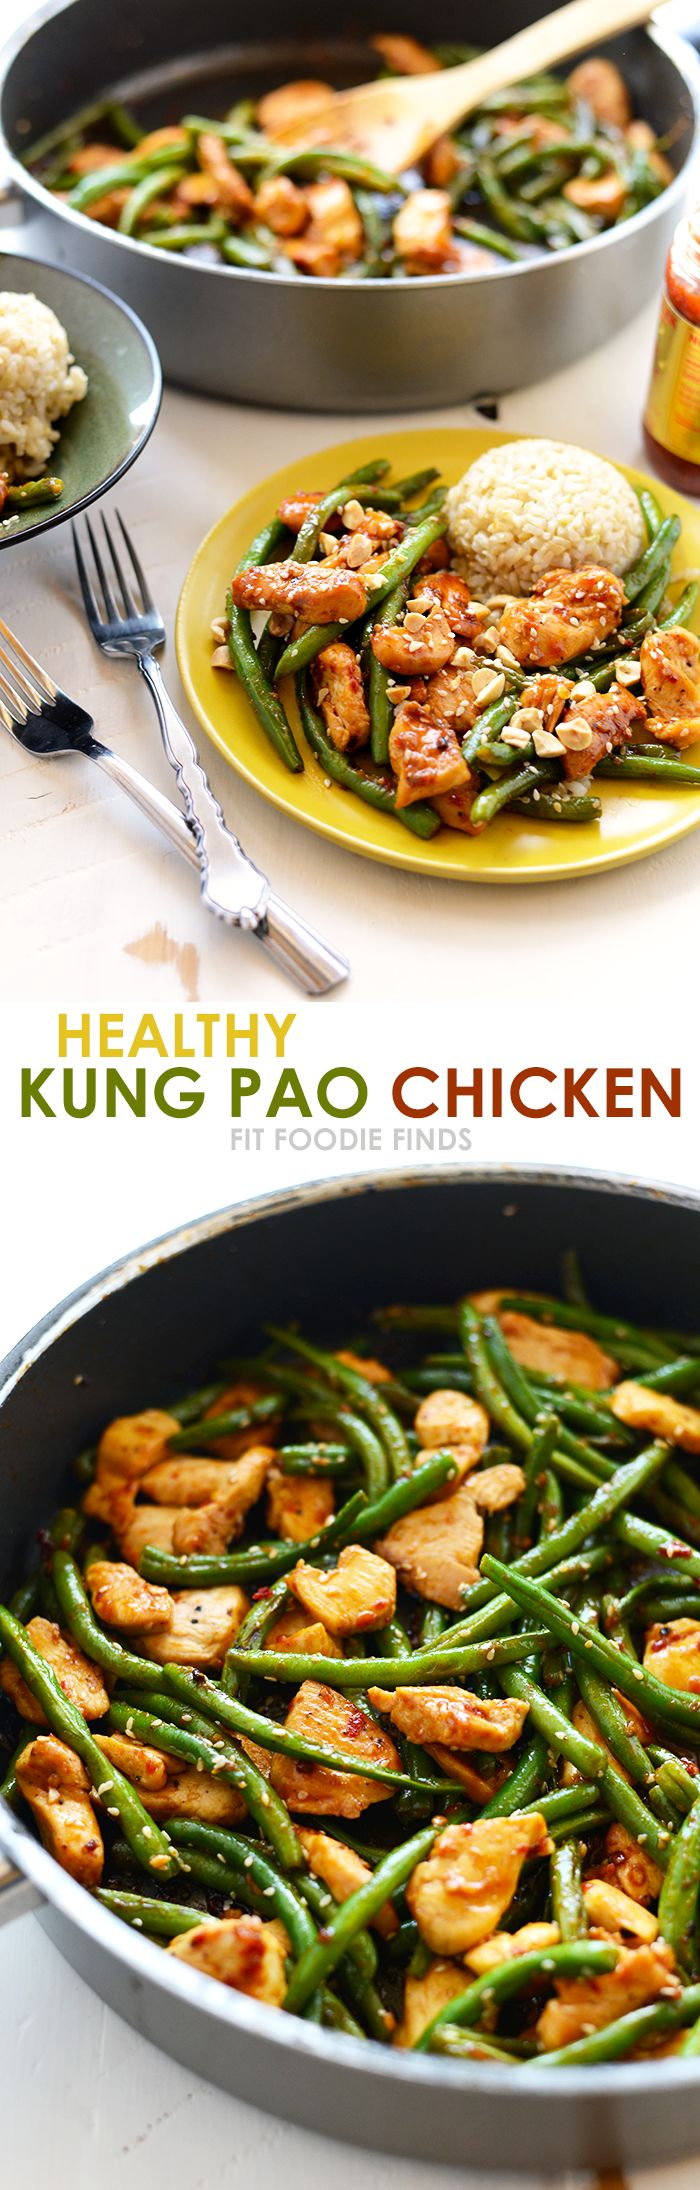 20 minutes/ Healthy Kung Pao Chicken with just 8 simple ingredients for a dinner packed with protein and paleo-friendly